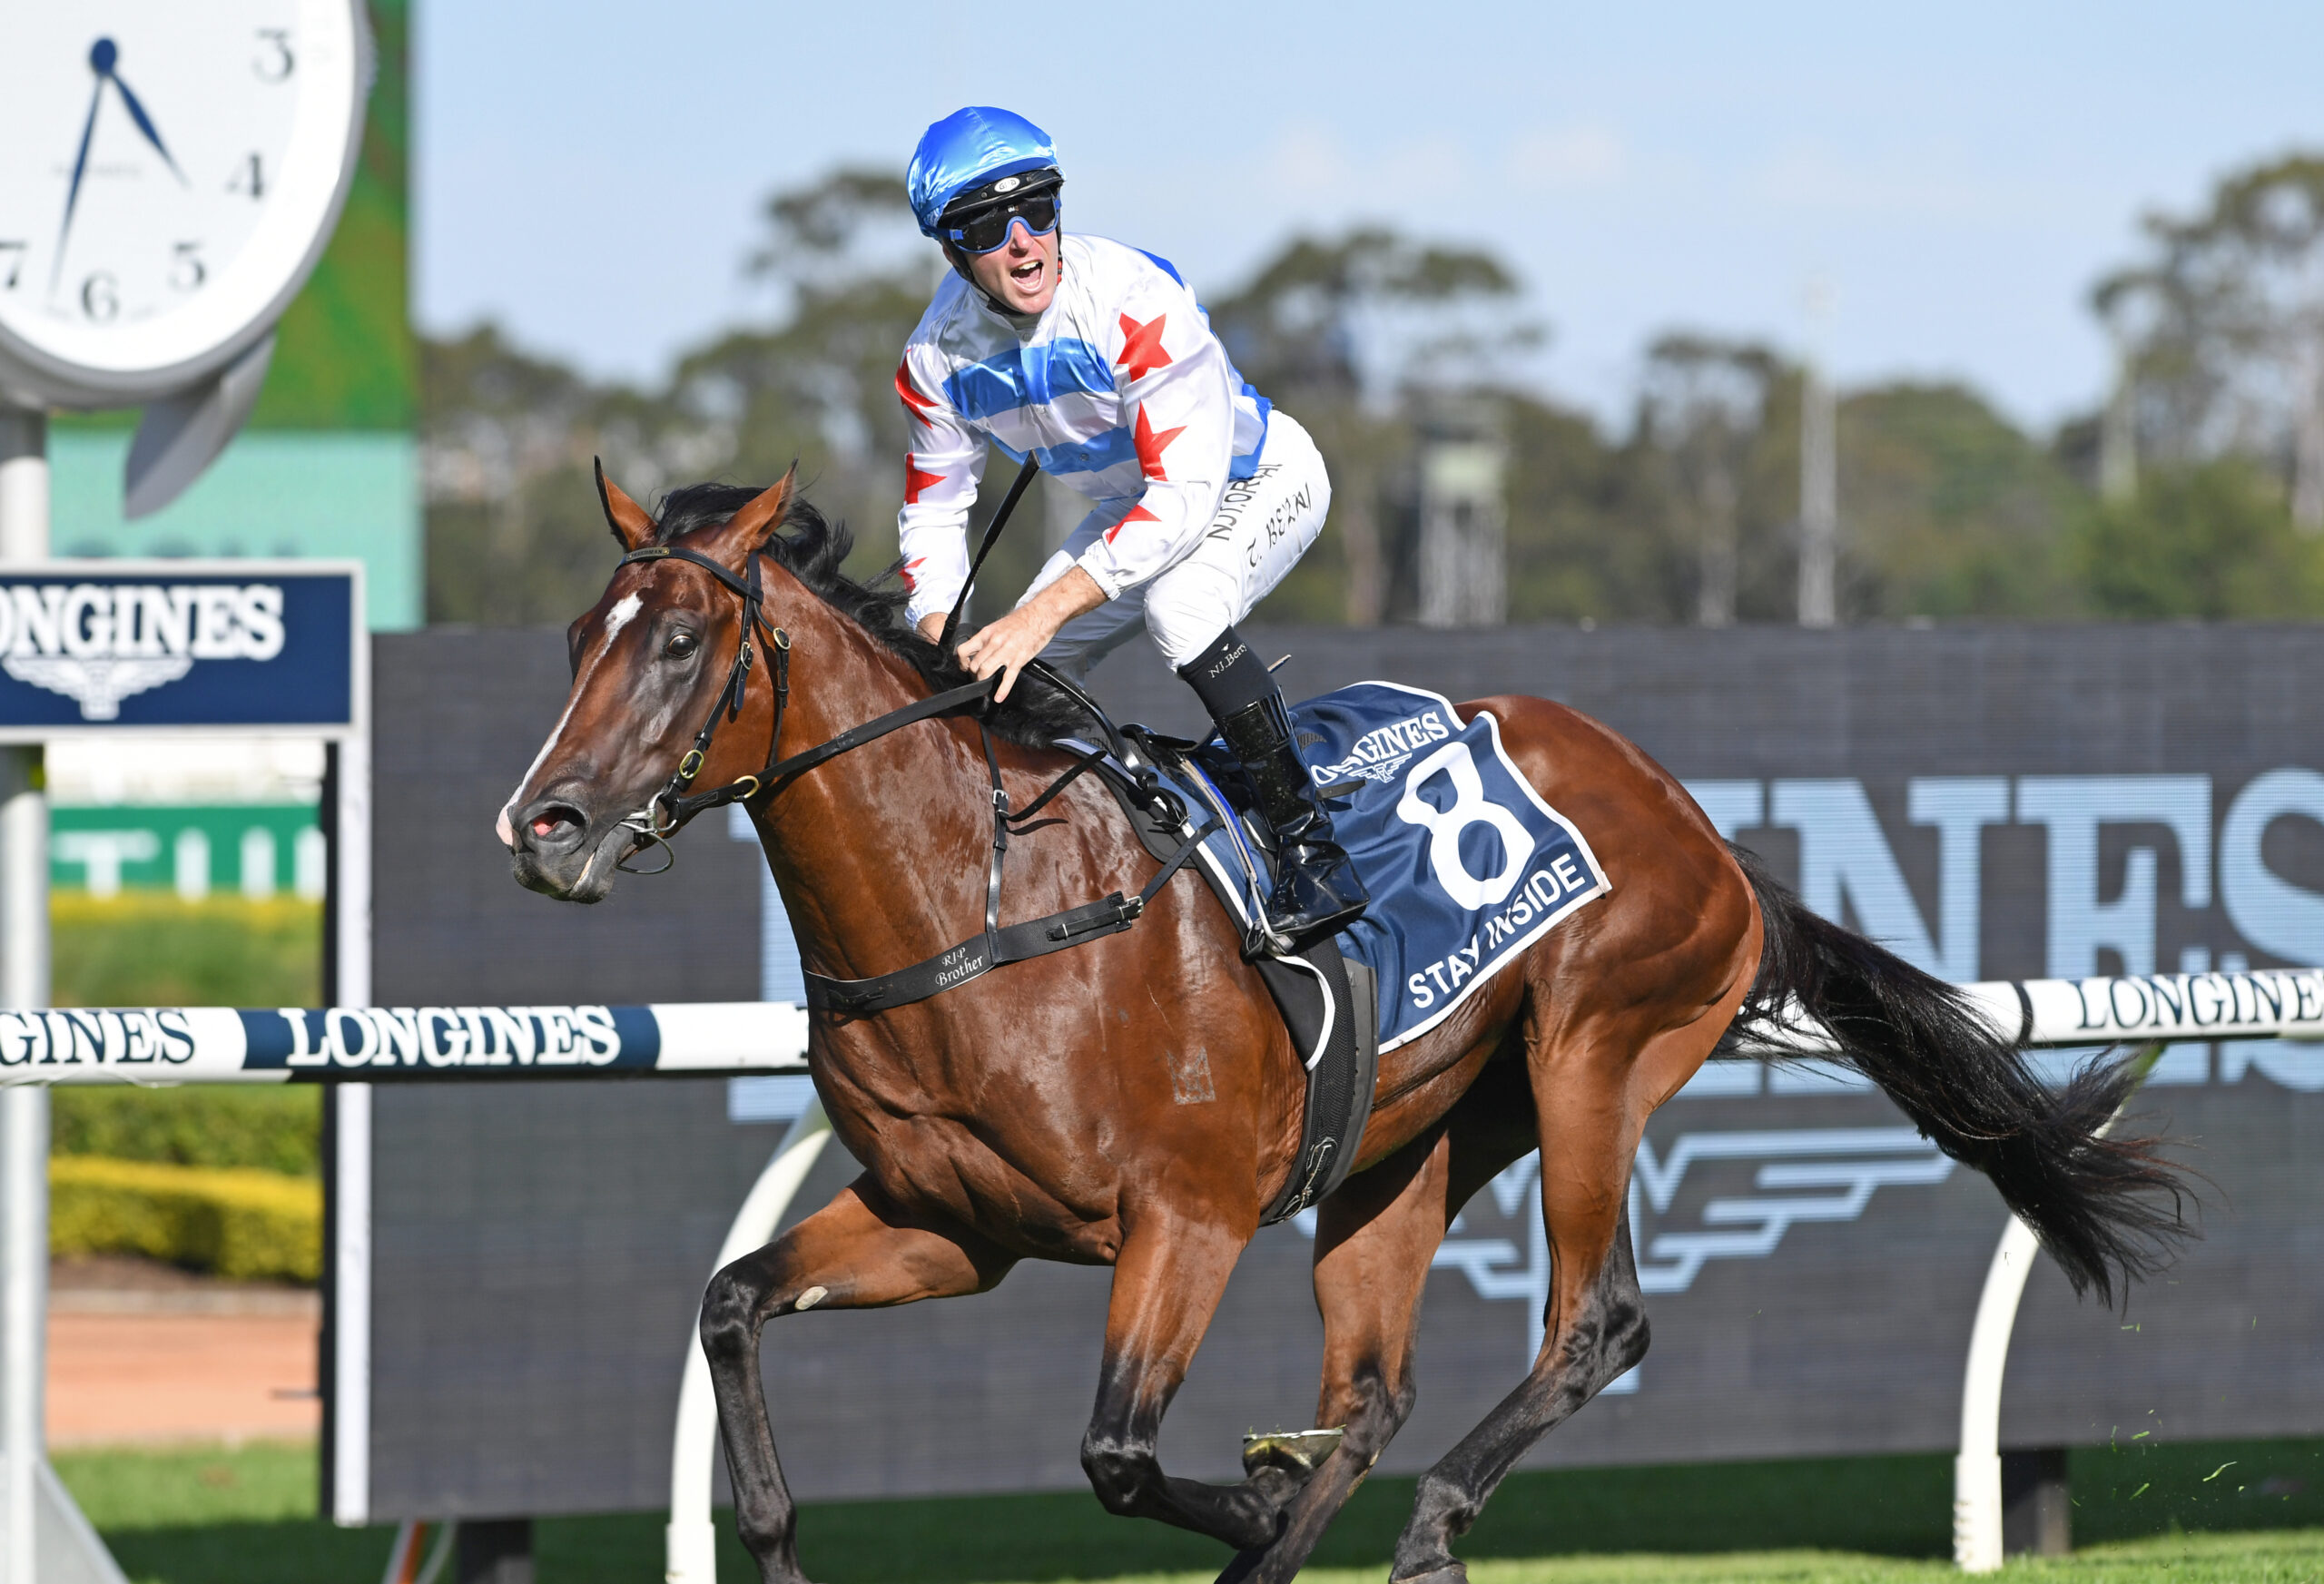 Golden Slipper winner Stay Inside